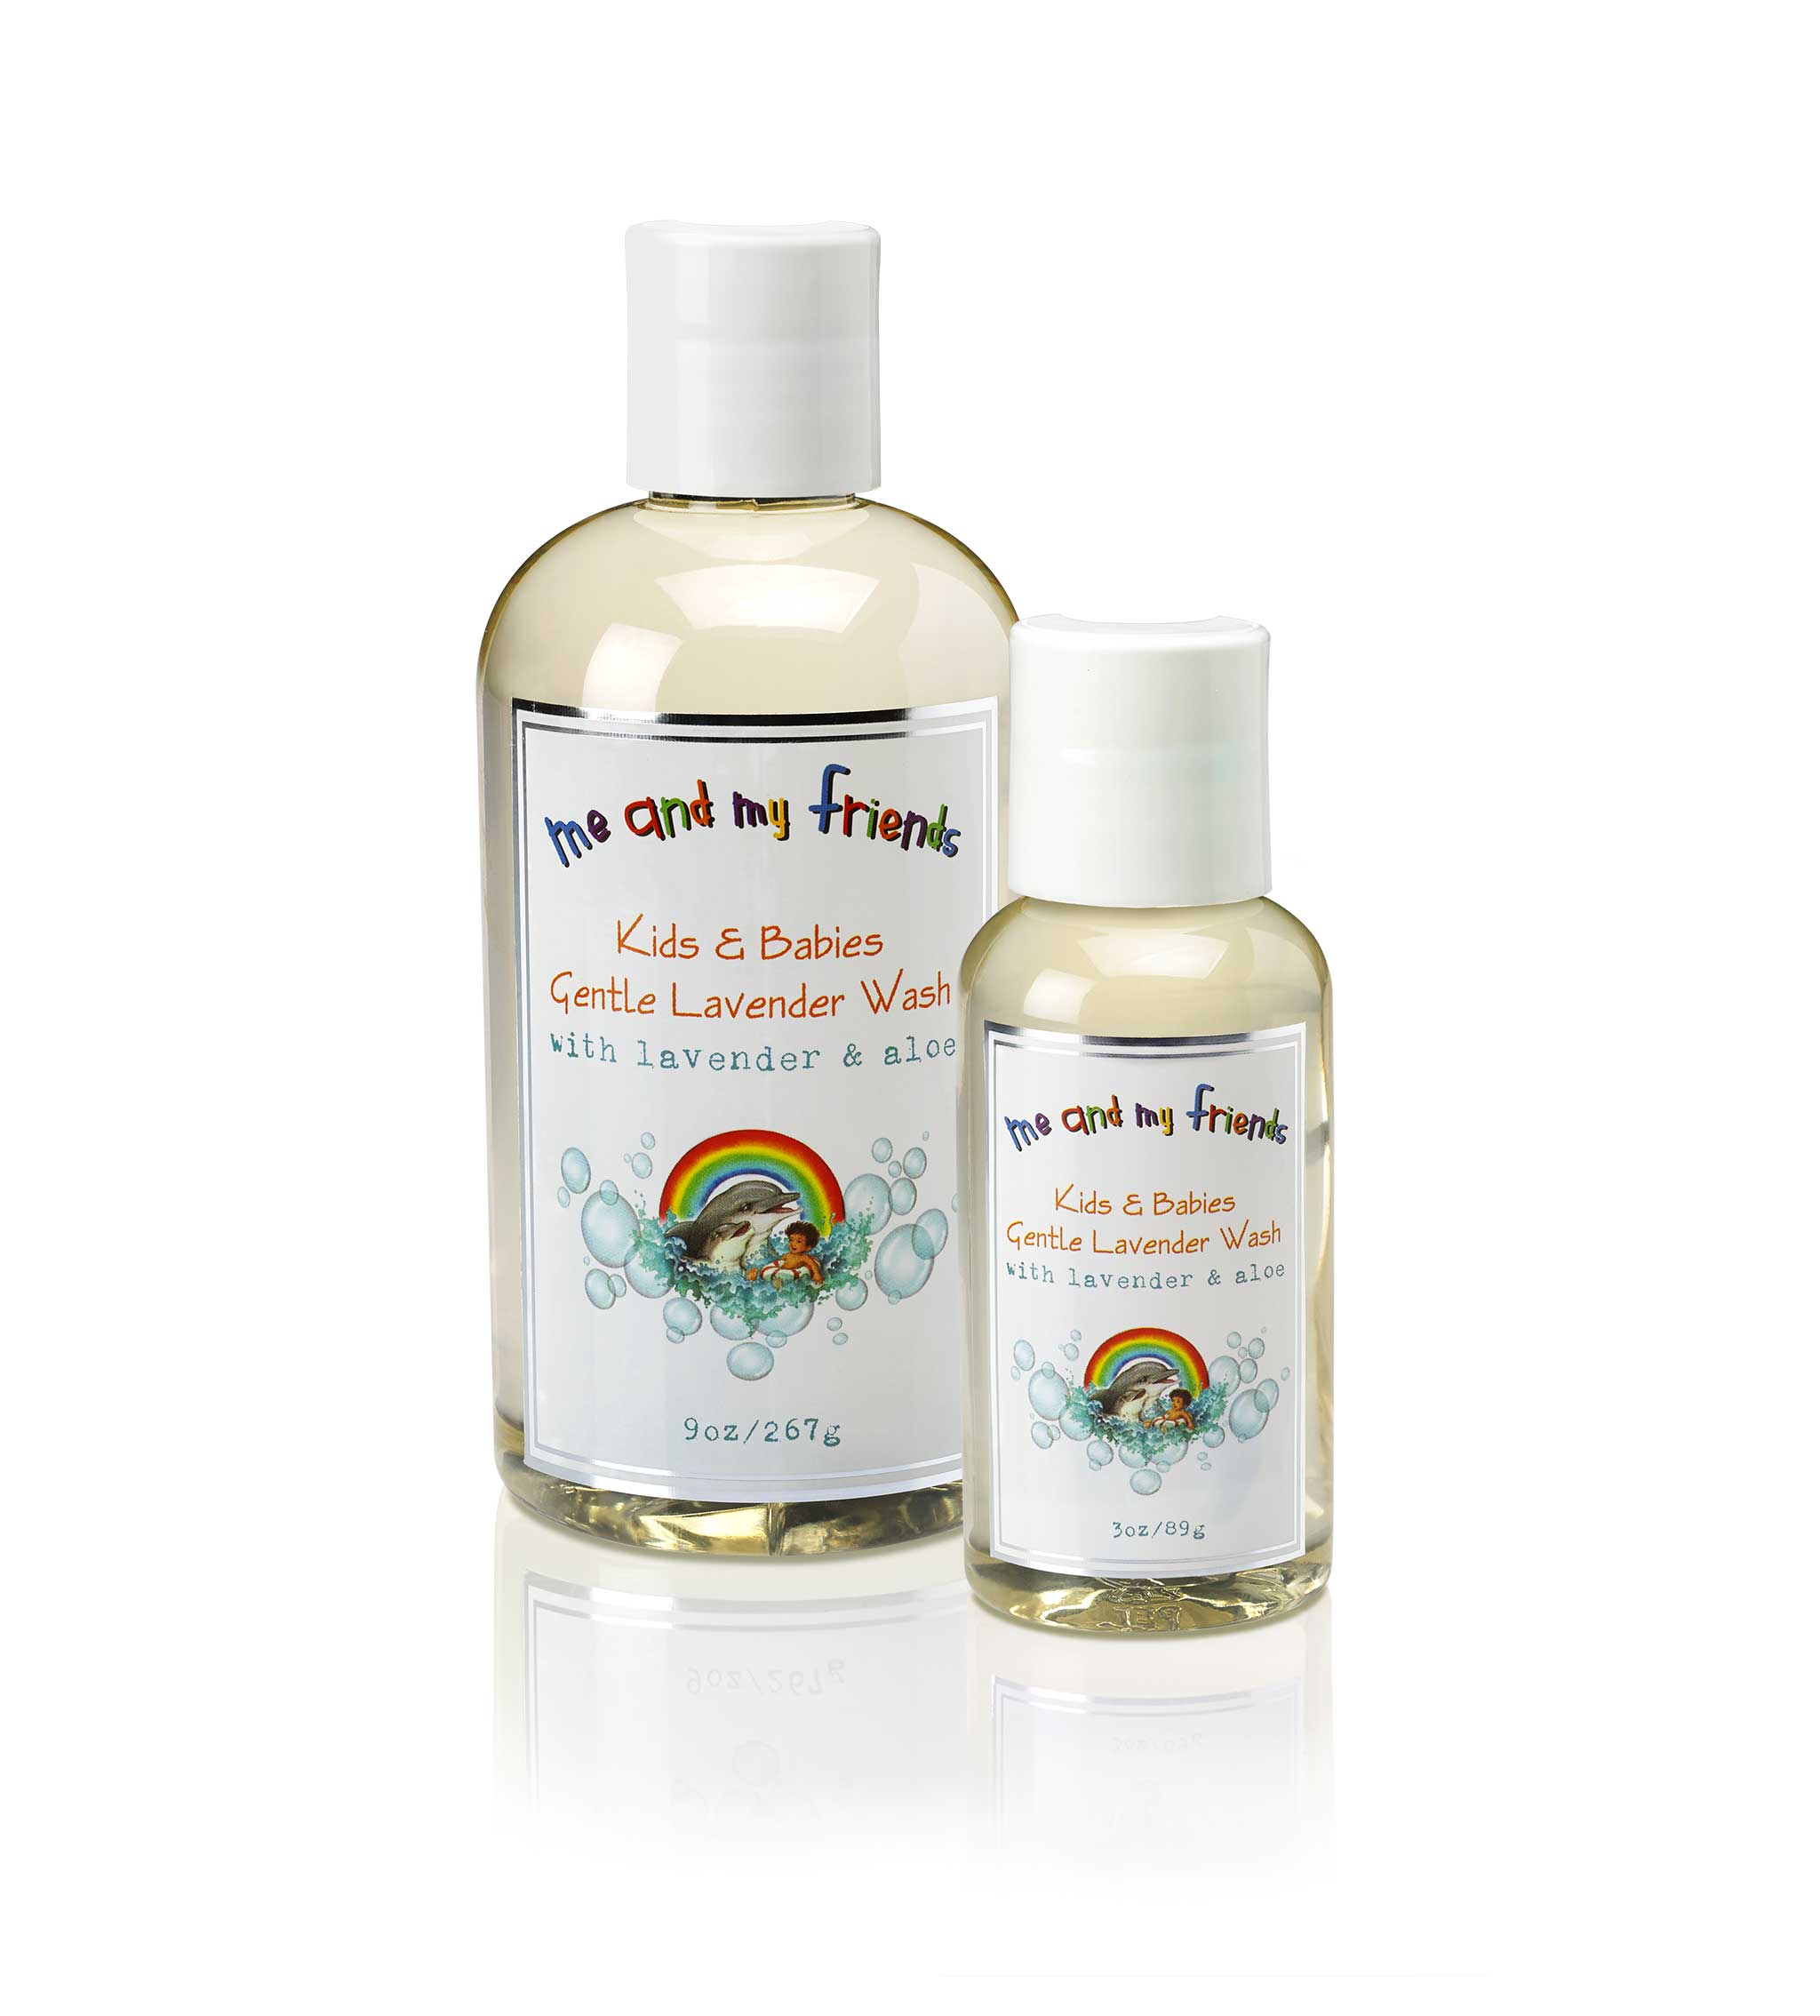 Child safe wash with natural oils of lavender and calendula extracts